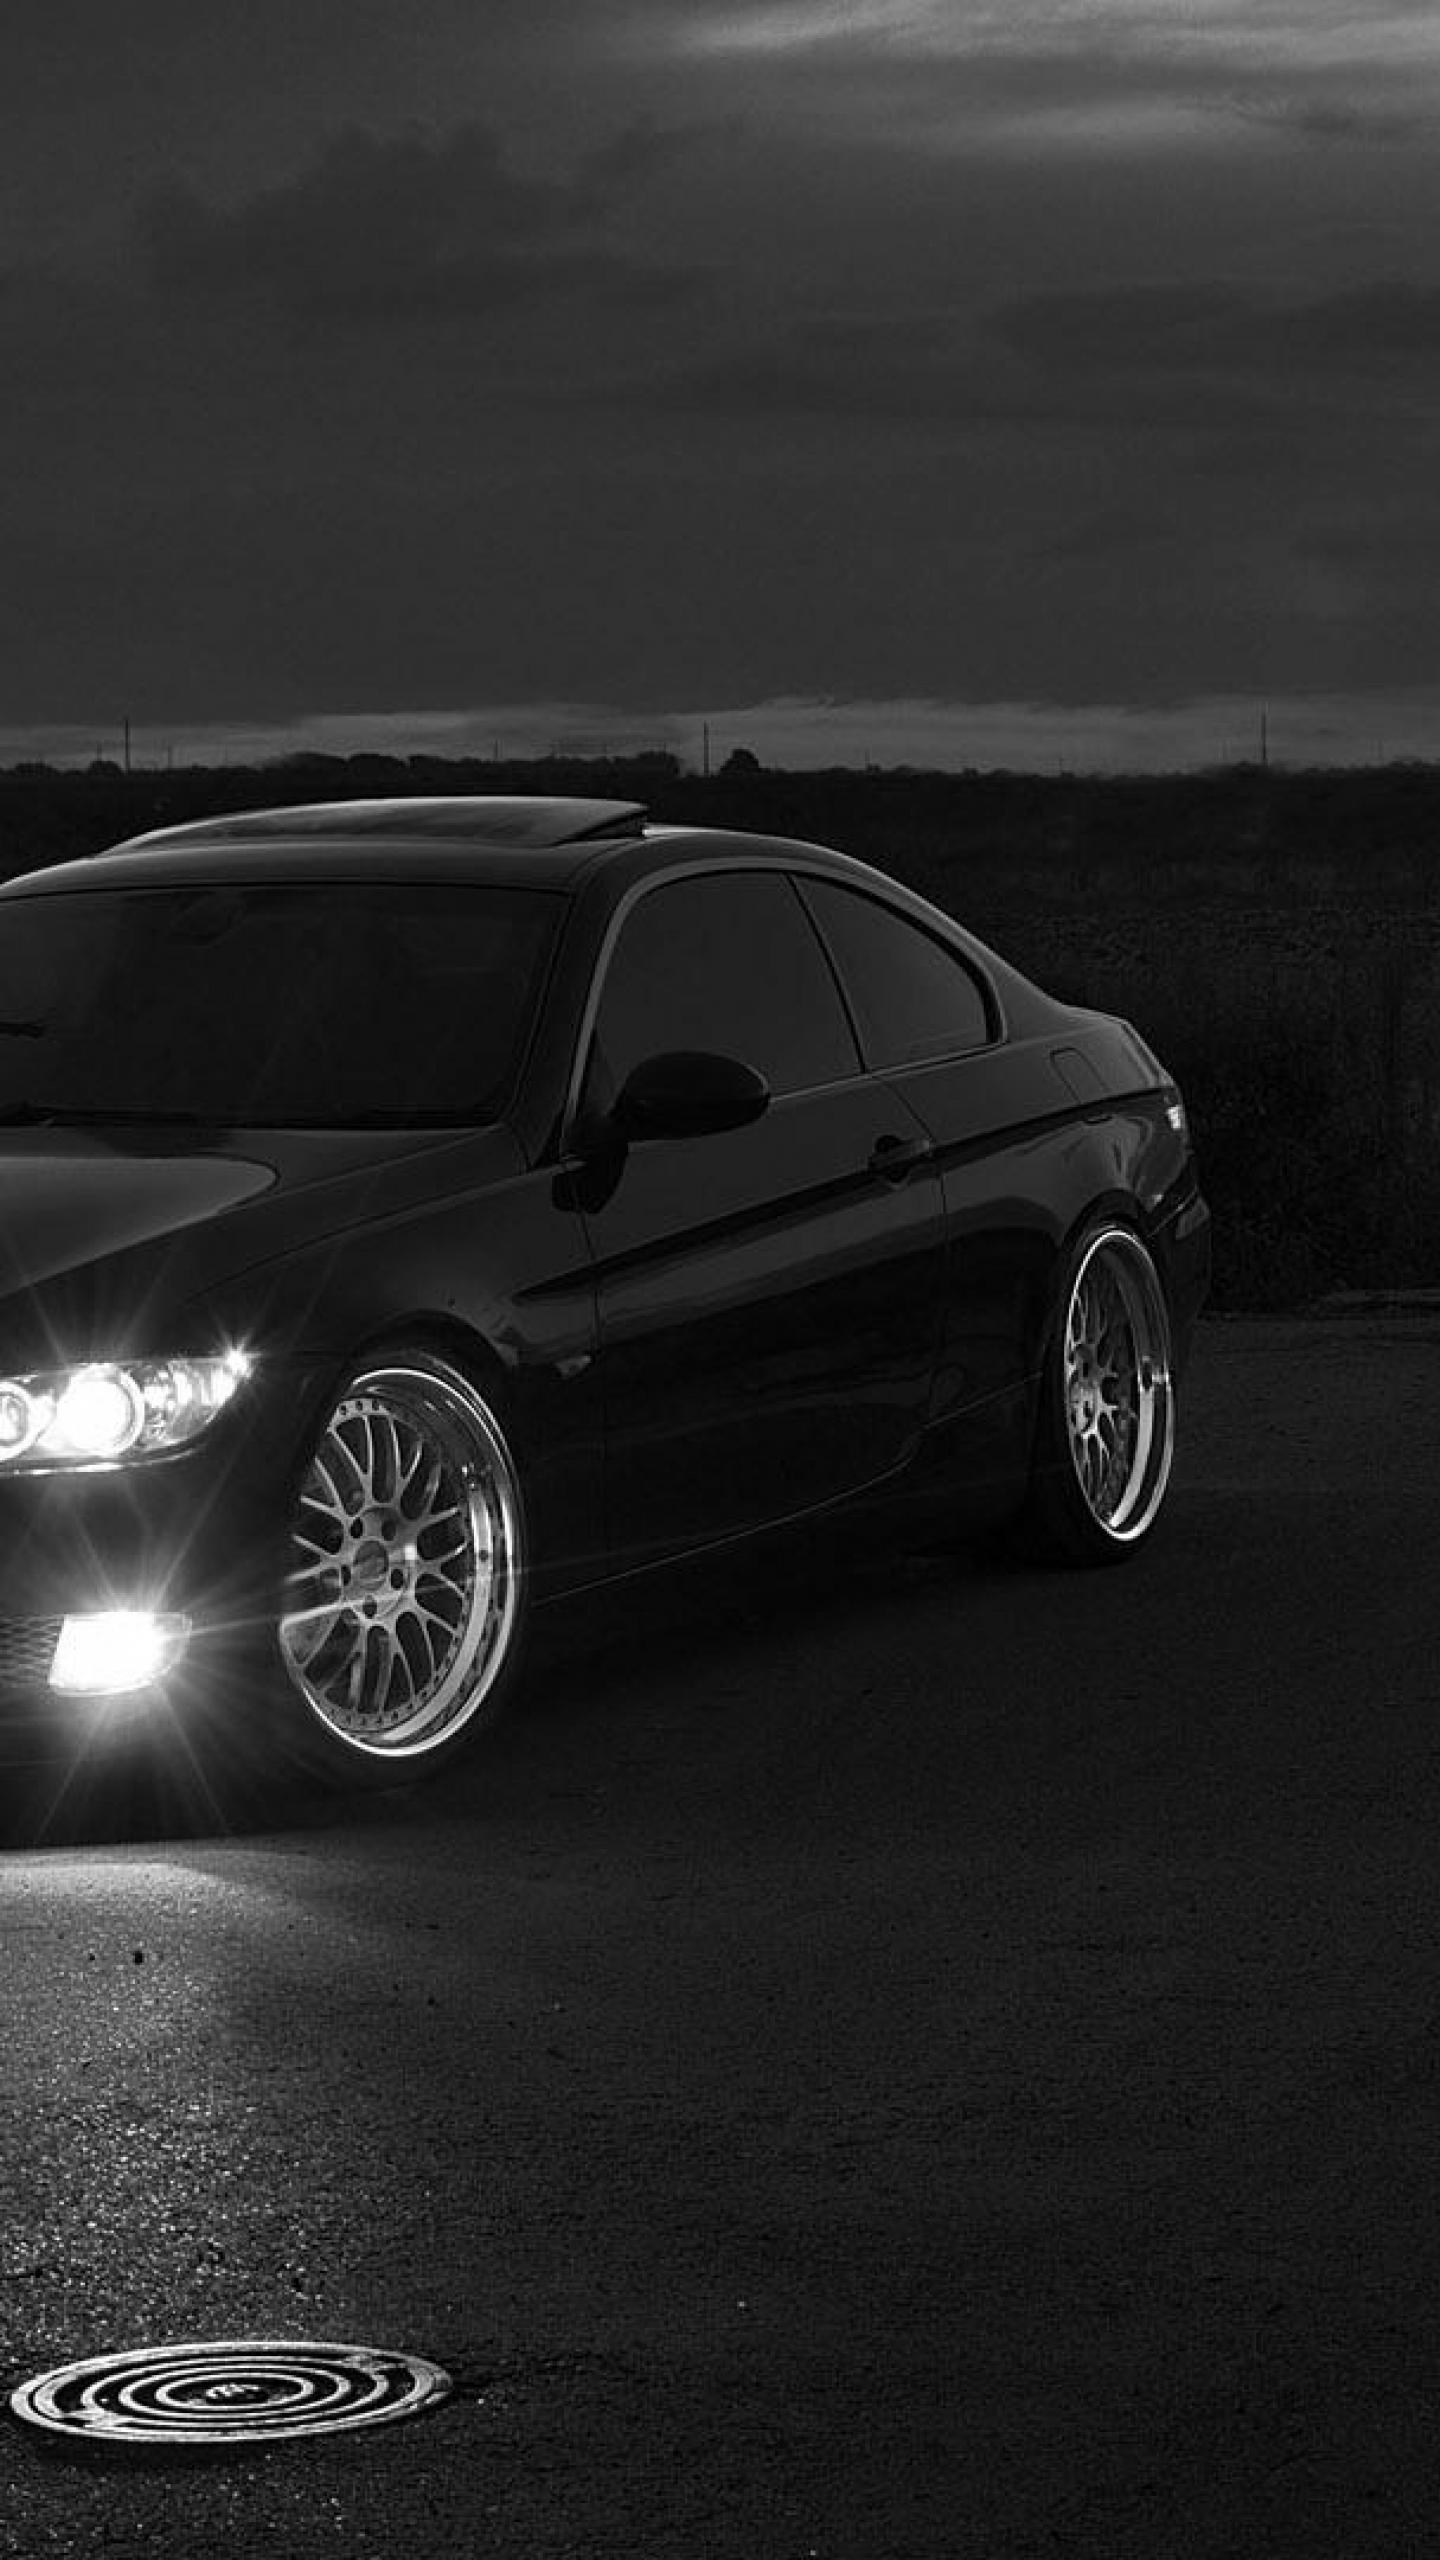 Bmw Wallpaper Iphone 6 Posted By Samantha Peltier